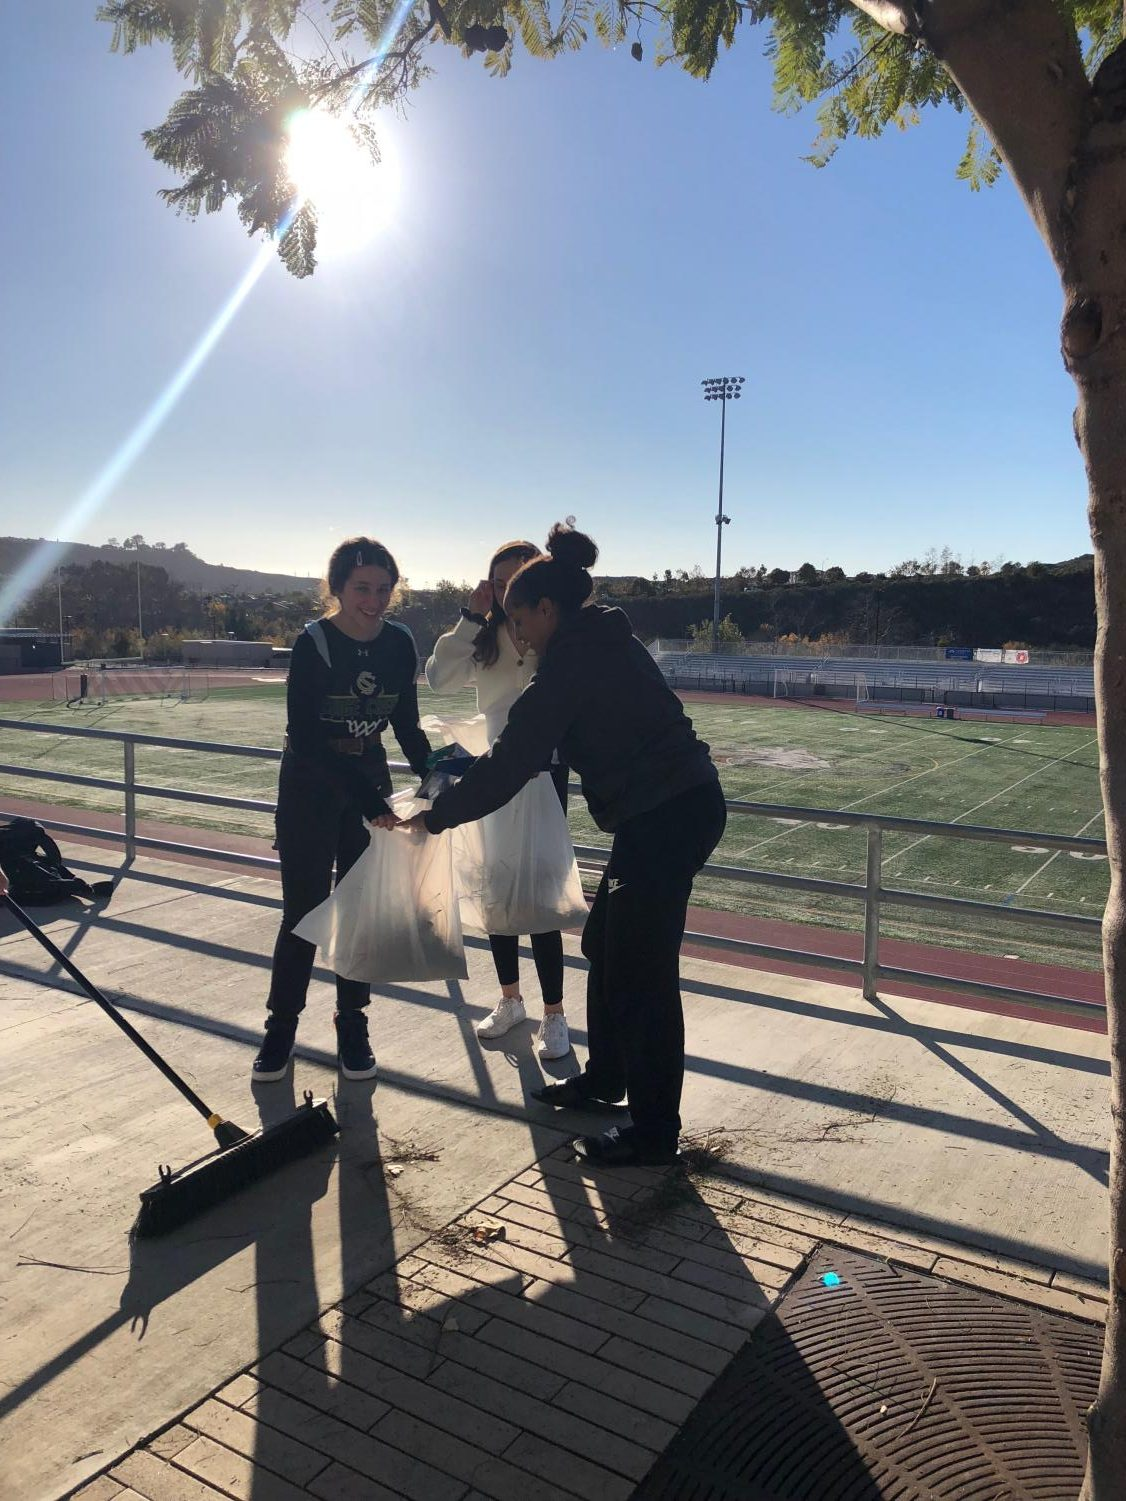 Students+clean+up+debris+from+trees+on+the+Athletic+Mall+during+the+Student-Athlete+Advisory+Committee%E2%80%99s+campus+cleanup.+The+student-athletes+not+only+focused+on+picking+up+trash+but+also+swept+dirt+and+debris+that+they+found+along+the+academic+mall.+